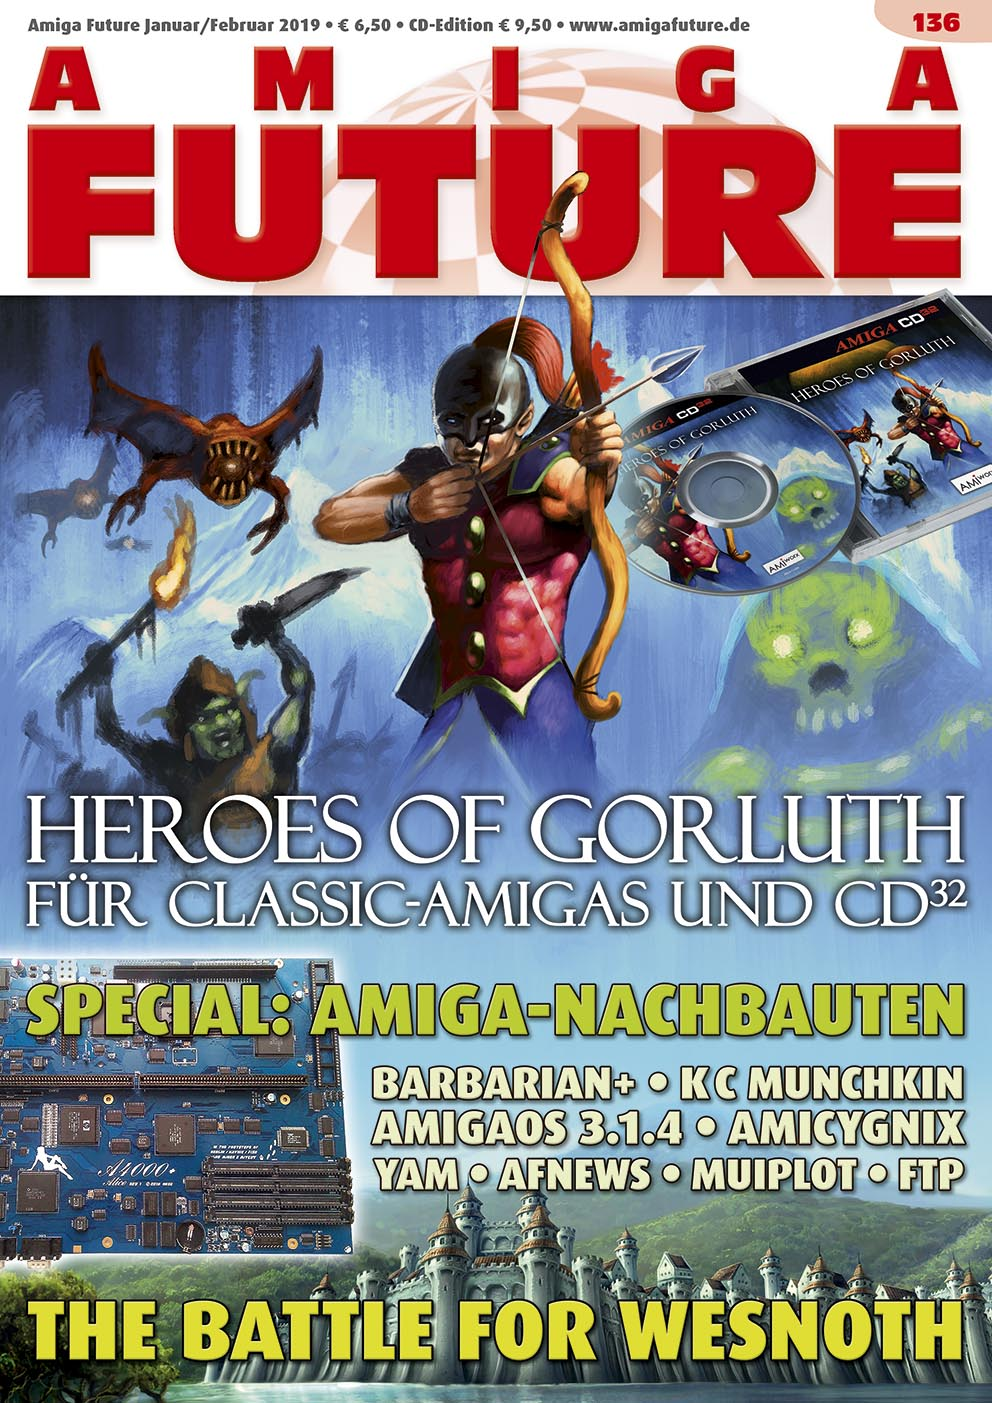 Amiga Future Issue 136